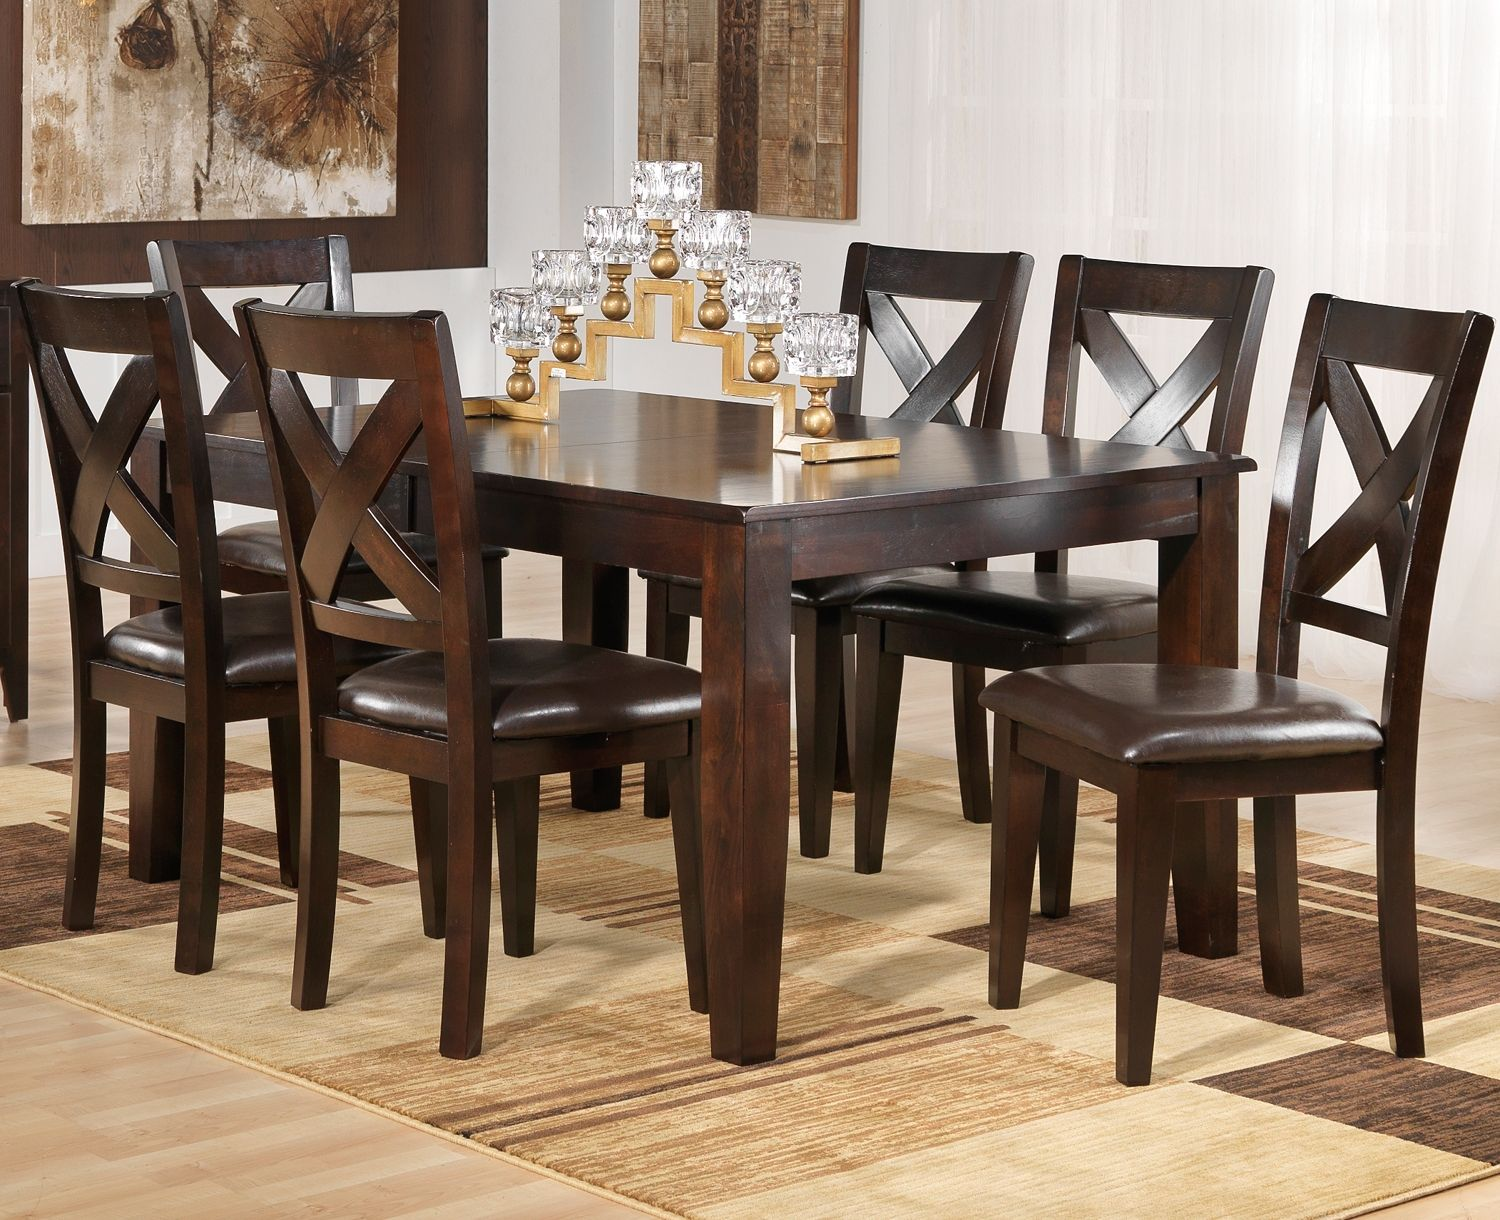 soho dining room 7 pc. dining set - leon's | leons wish list